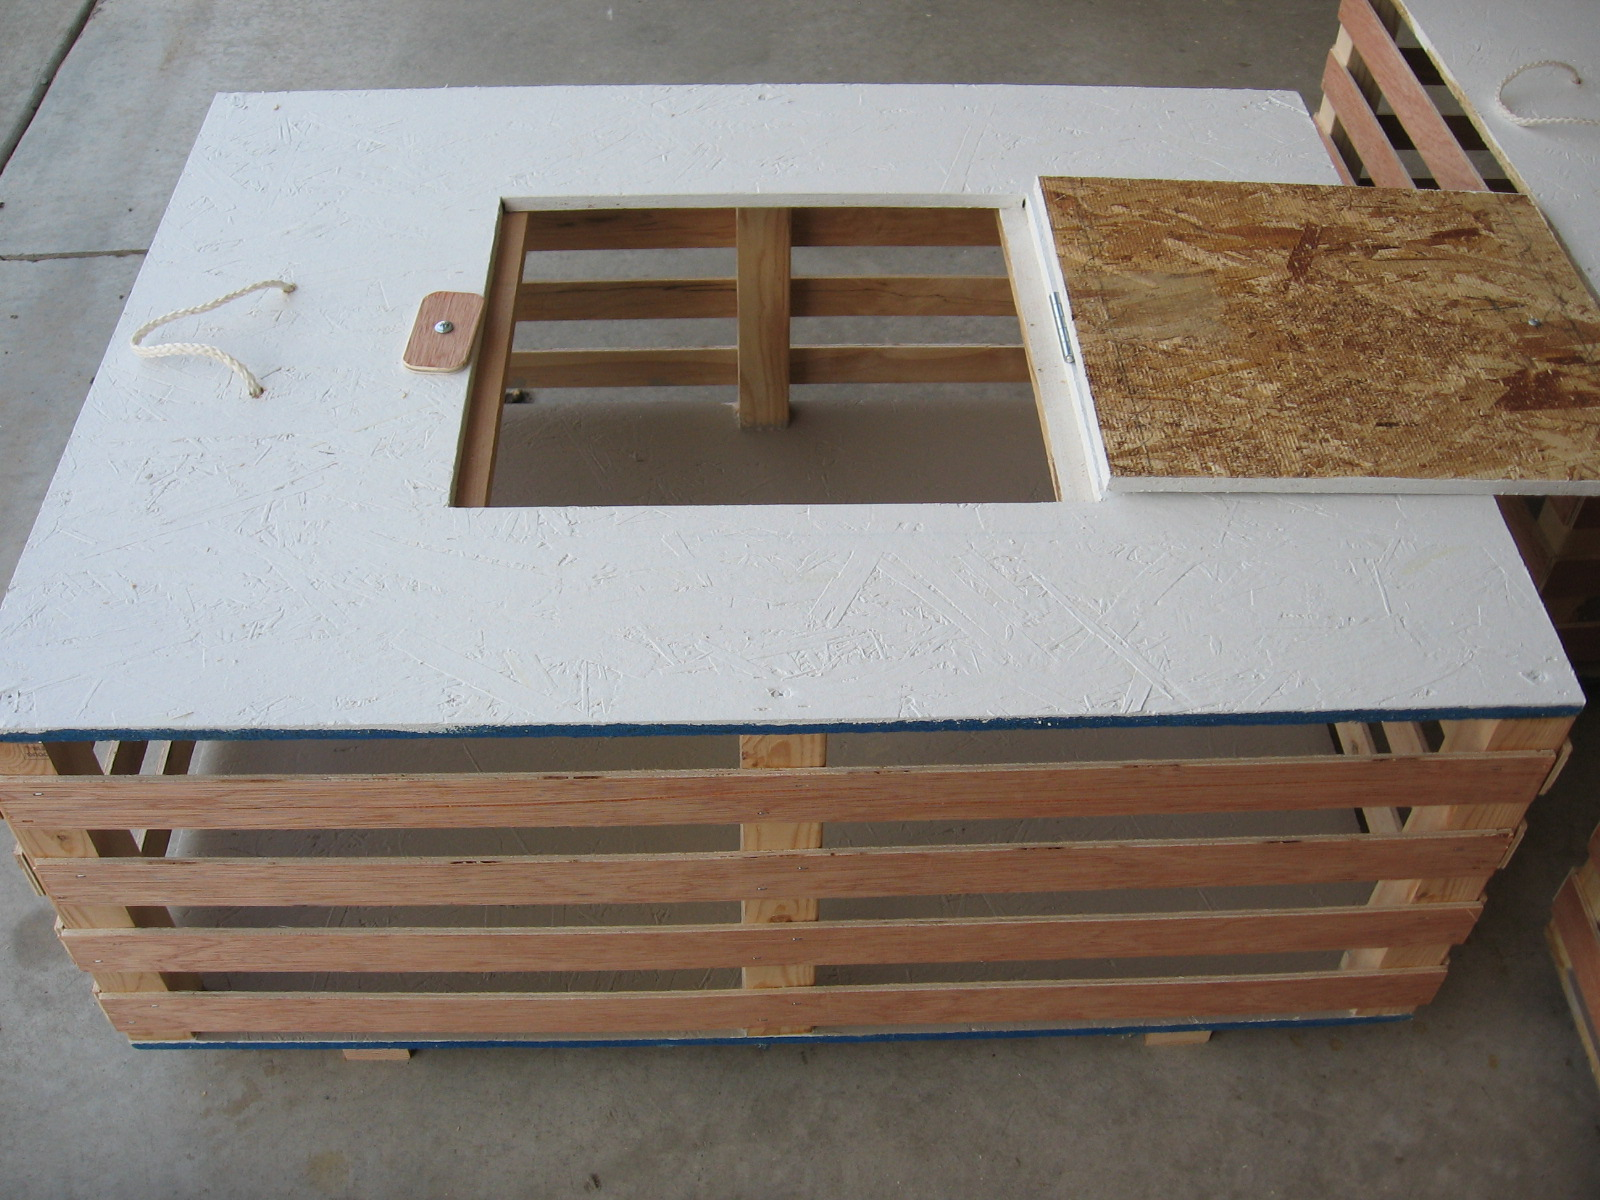 Project freedom ranger transport crate build for Wooden chicken crate plans